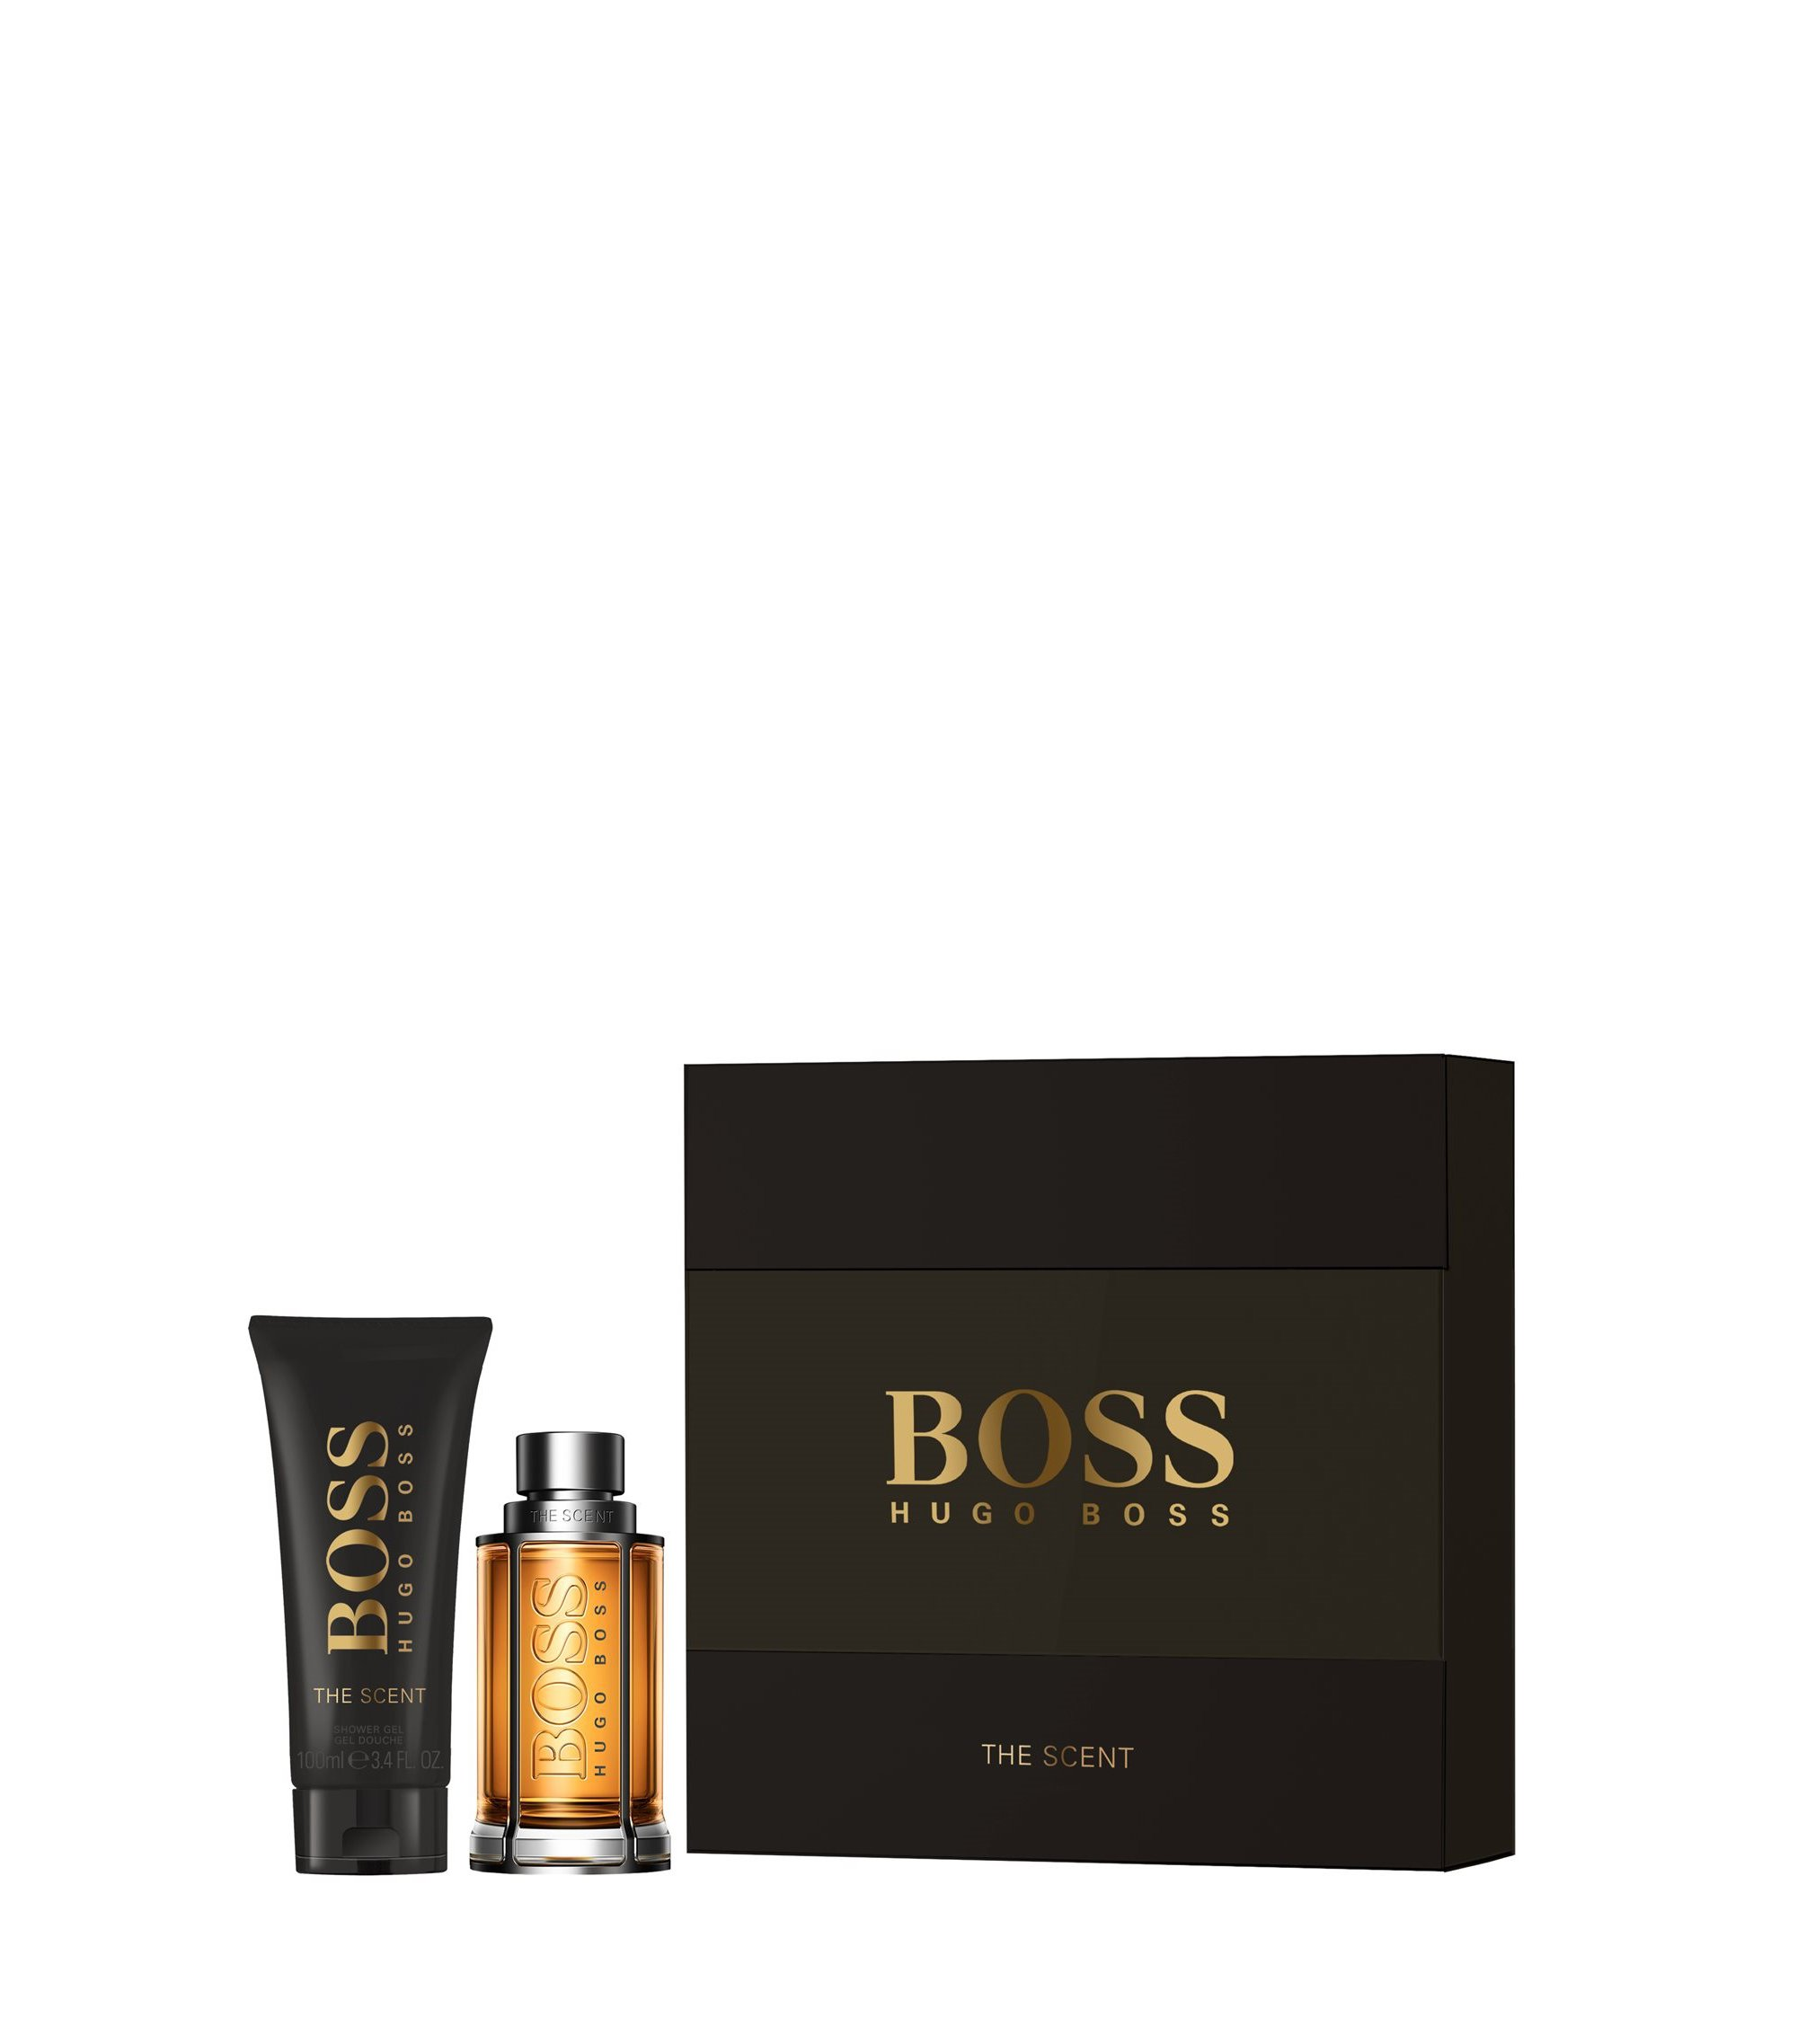 Set de regalo del perfume BOSS The Scent, Assorted-Pre-Pack